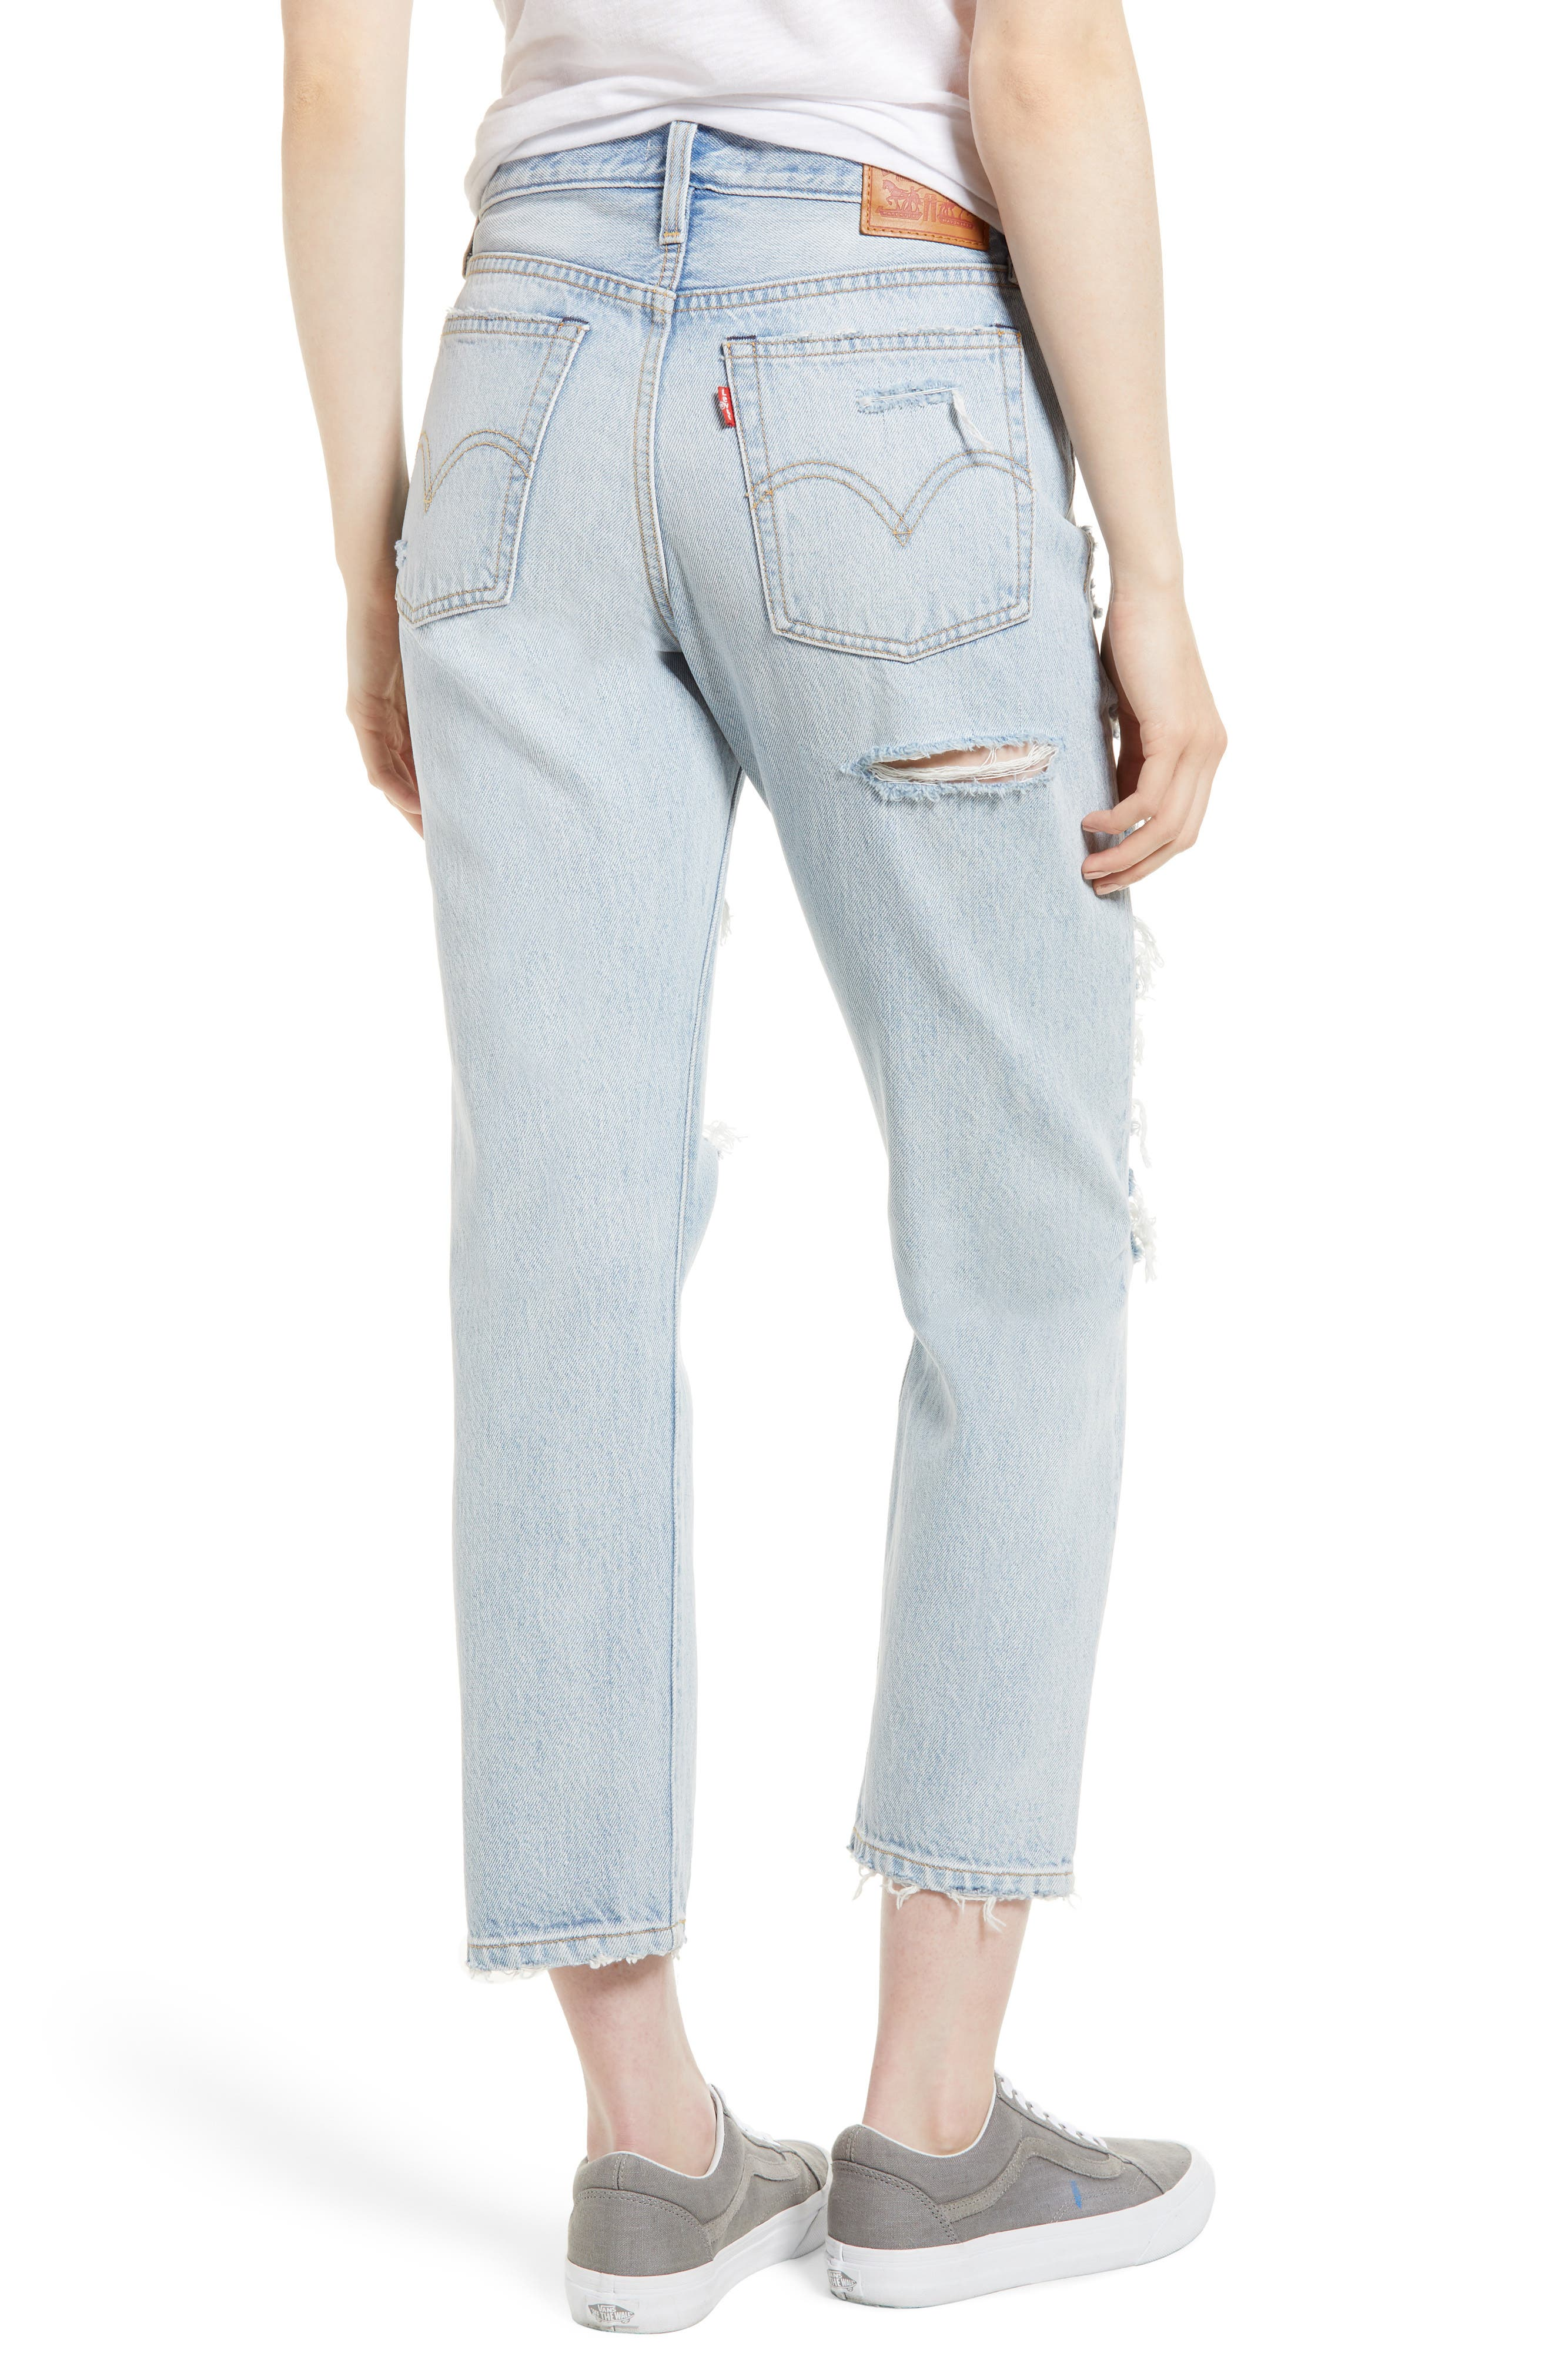 Wedgie High Waist Ripped Straight Jeans,                             Alternate thumbnail 2, color,                             Light Blue 1